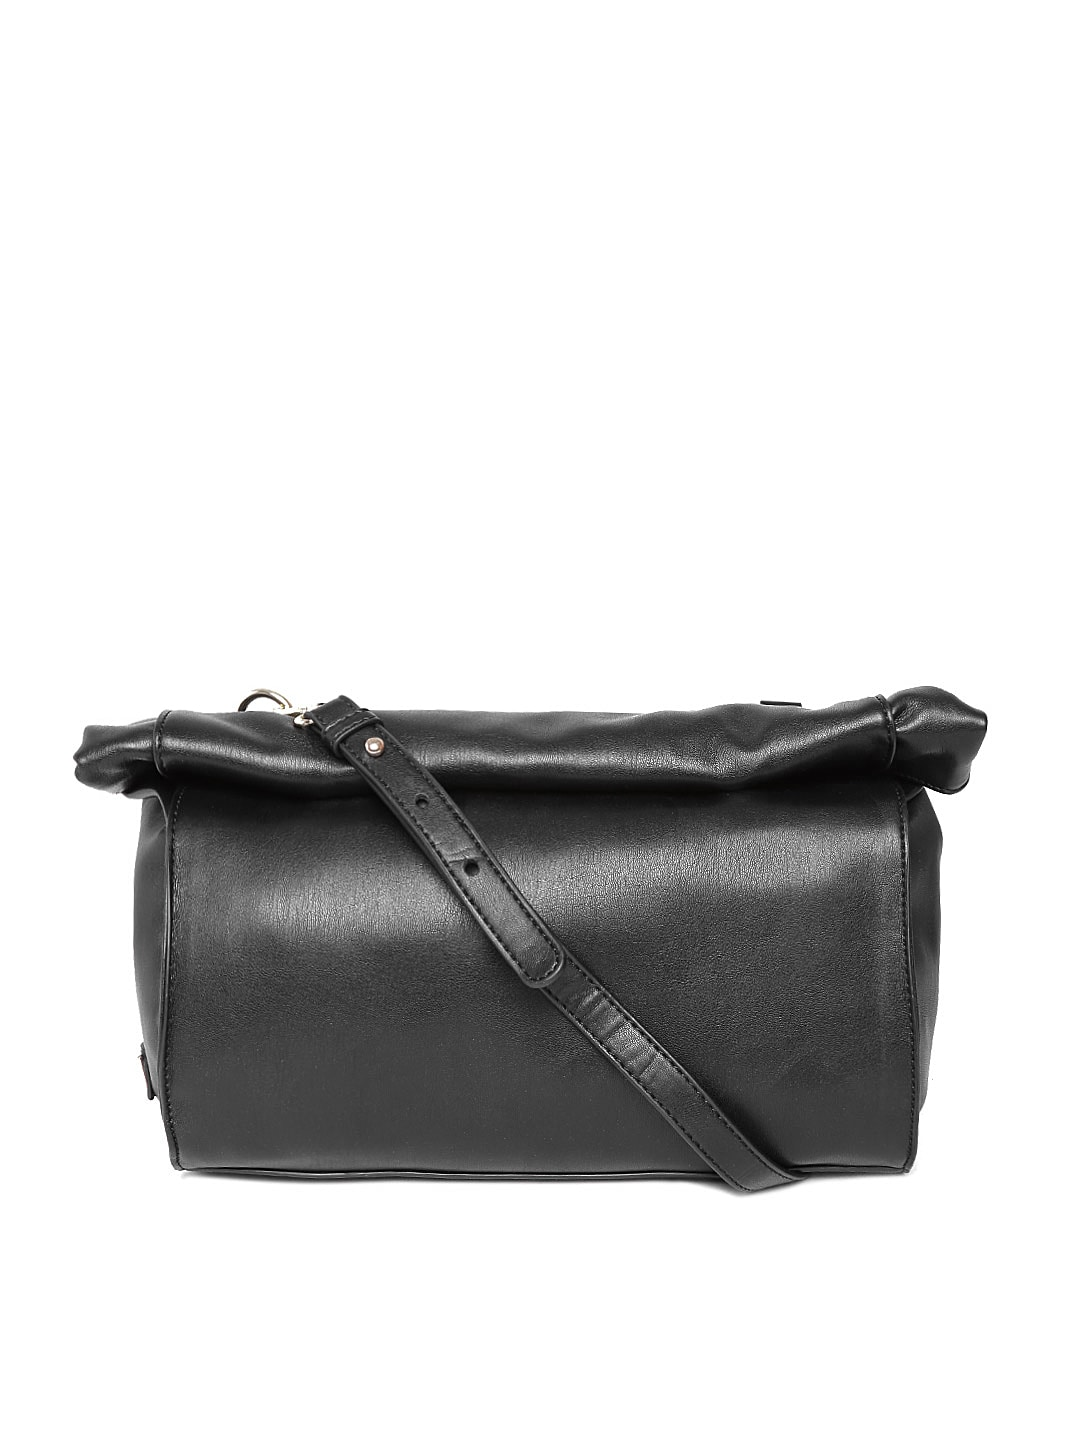 United colors of benetton 15a6pu1d9116i-100 Black Foldable Sling Bag- Price  in India d16eb50a33